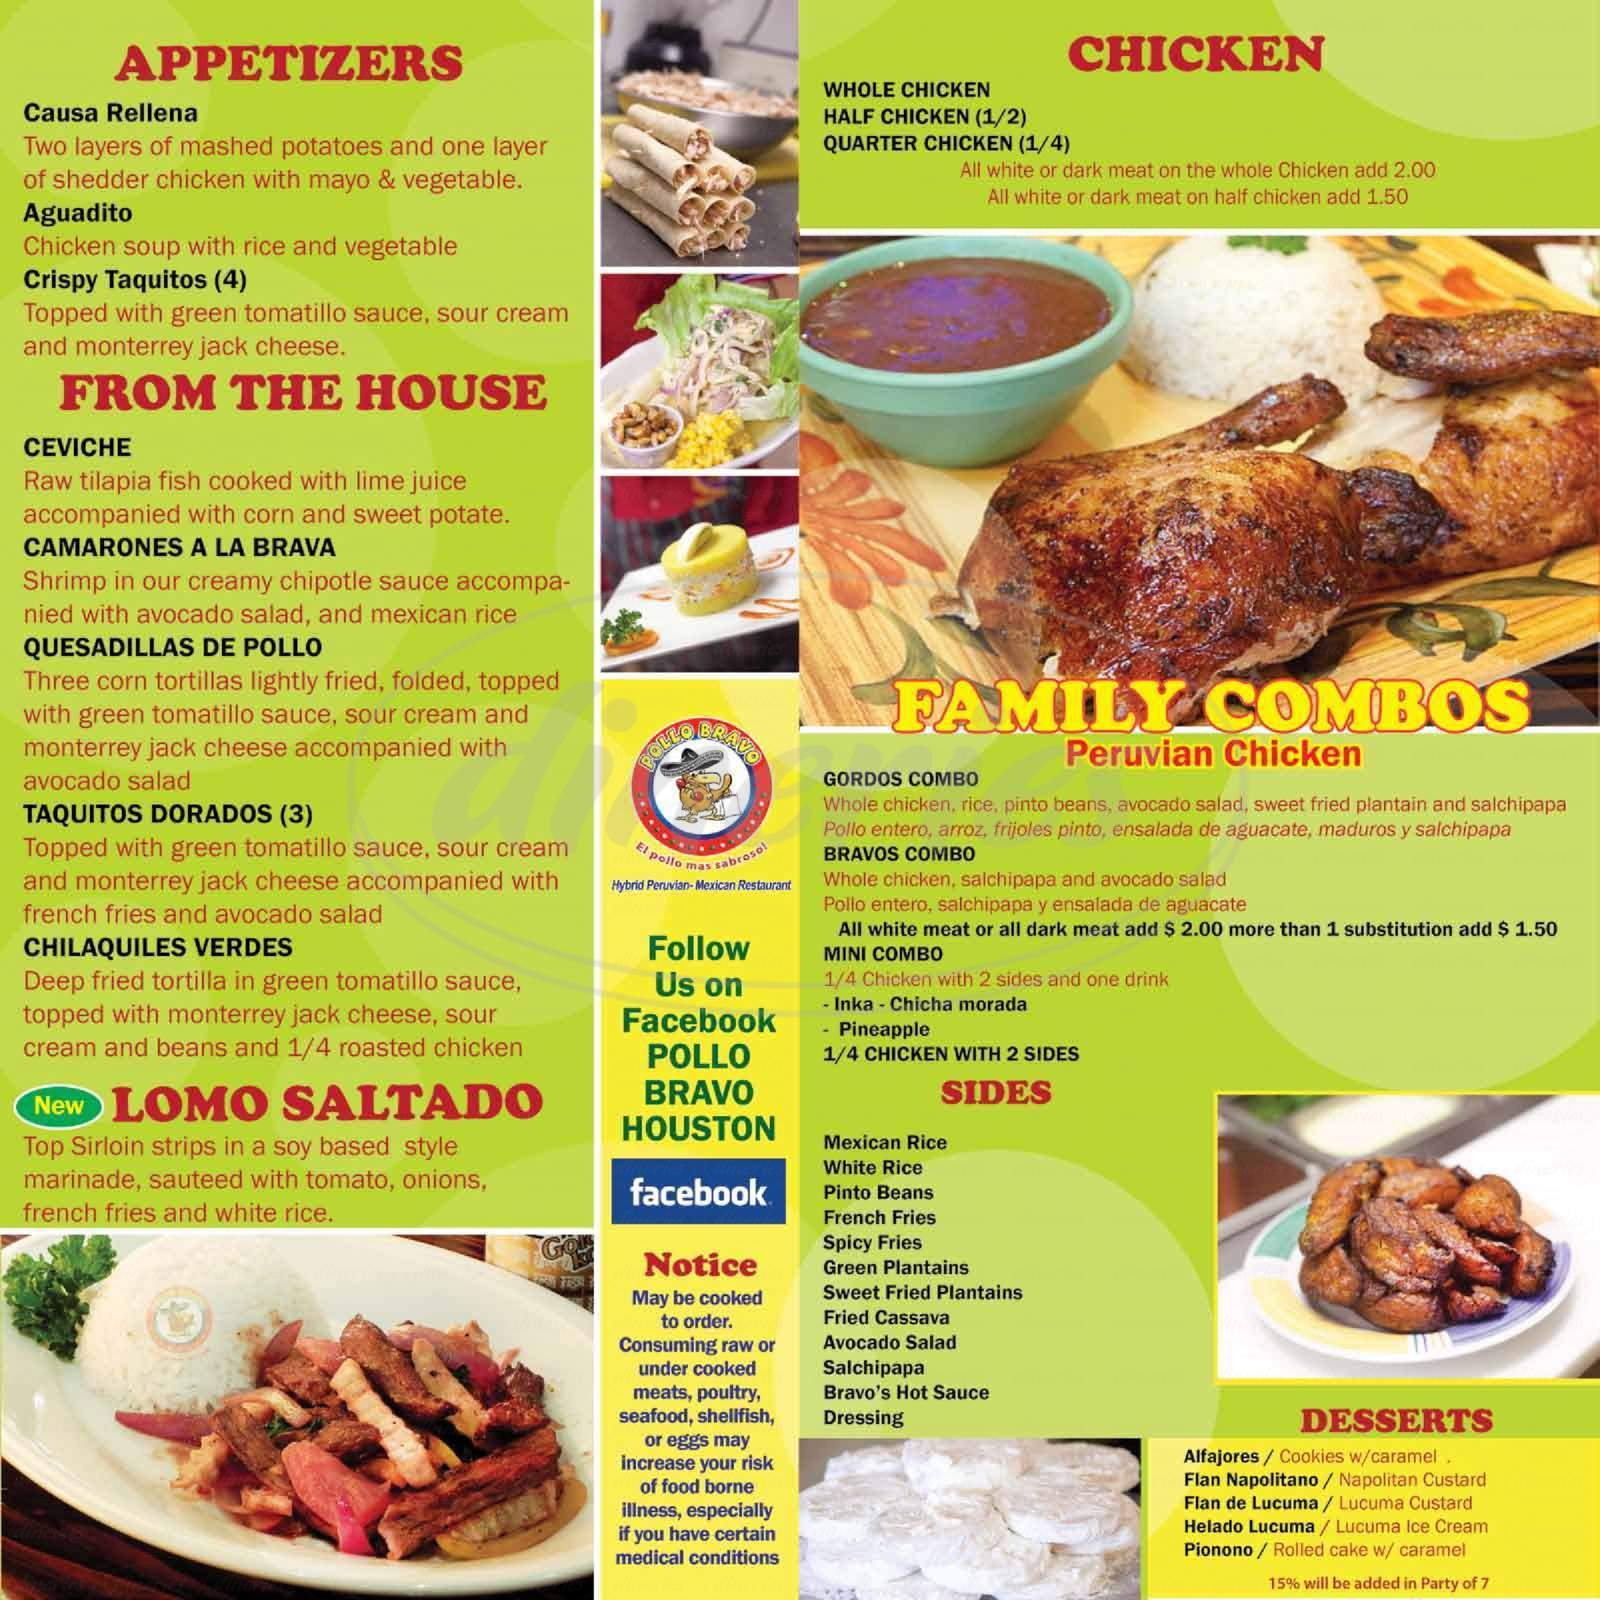 menu for Pollo Bravo